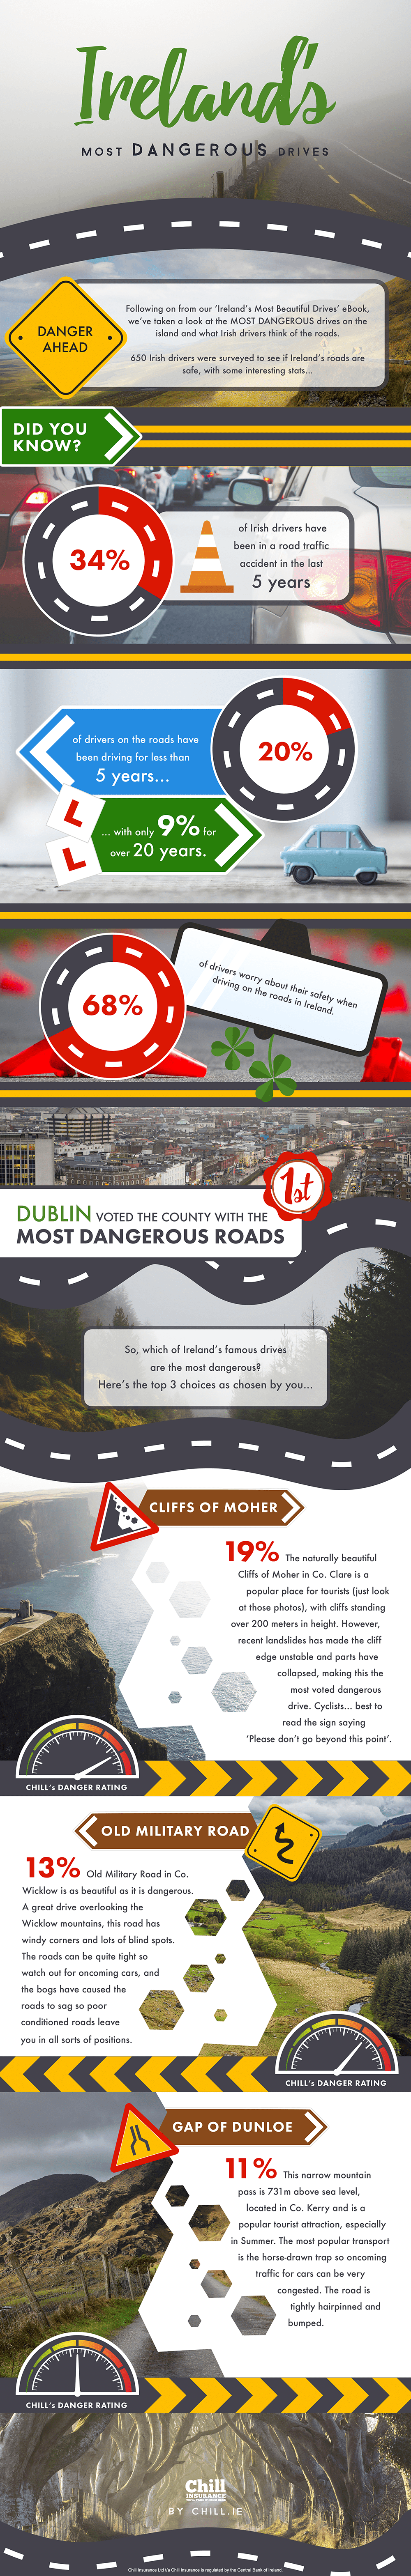 dangerous-drives Ireland